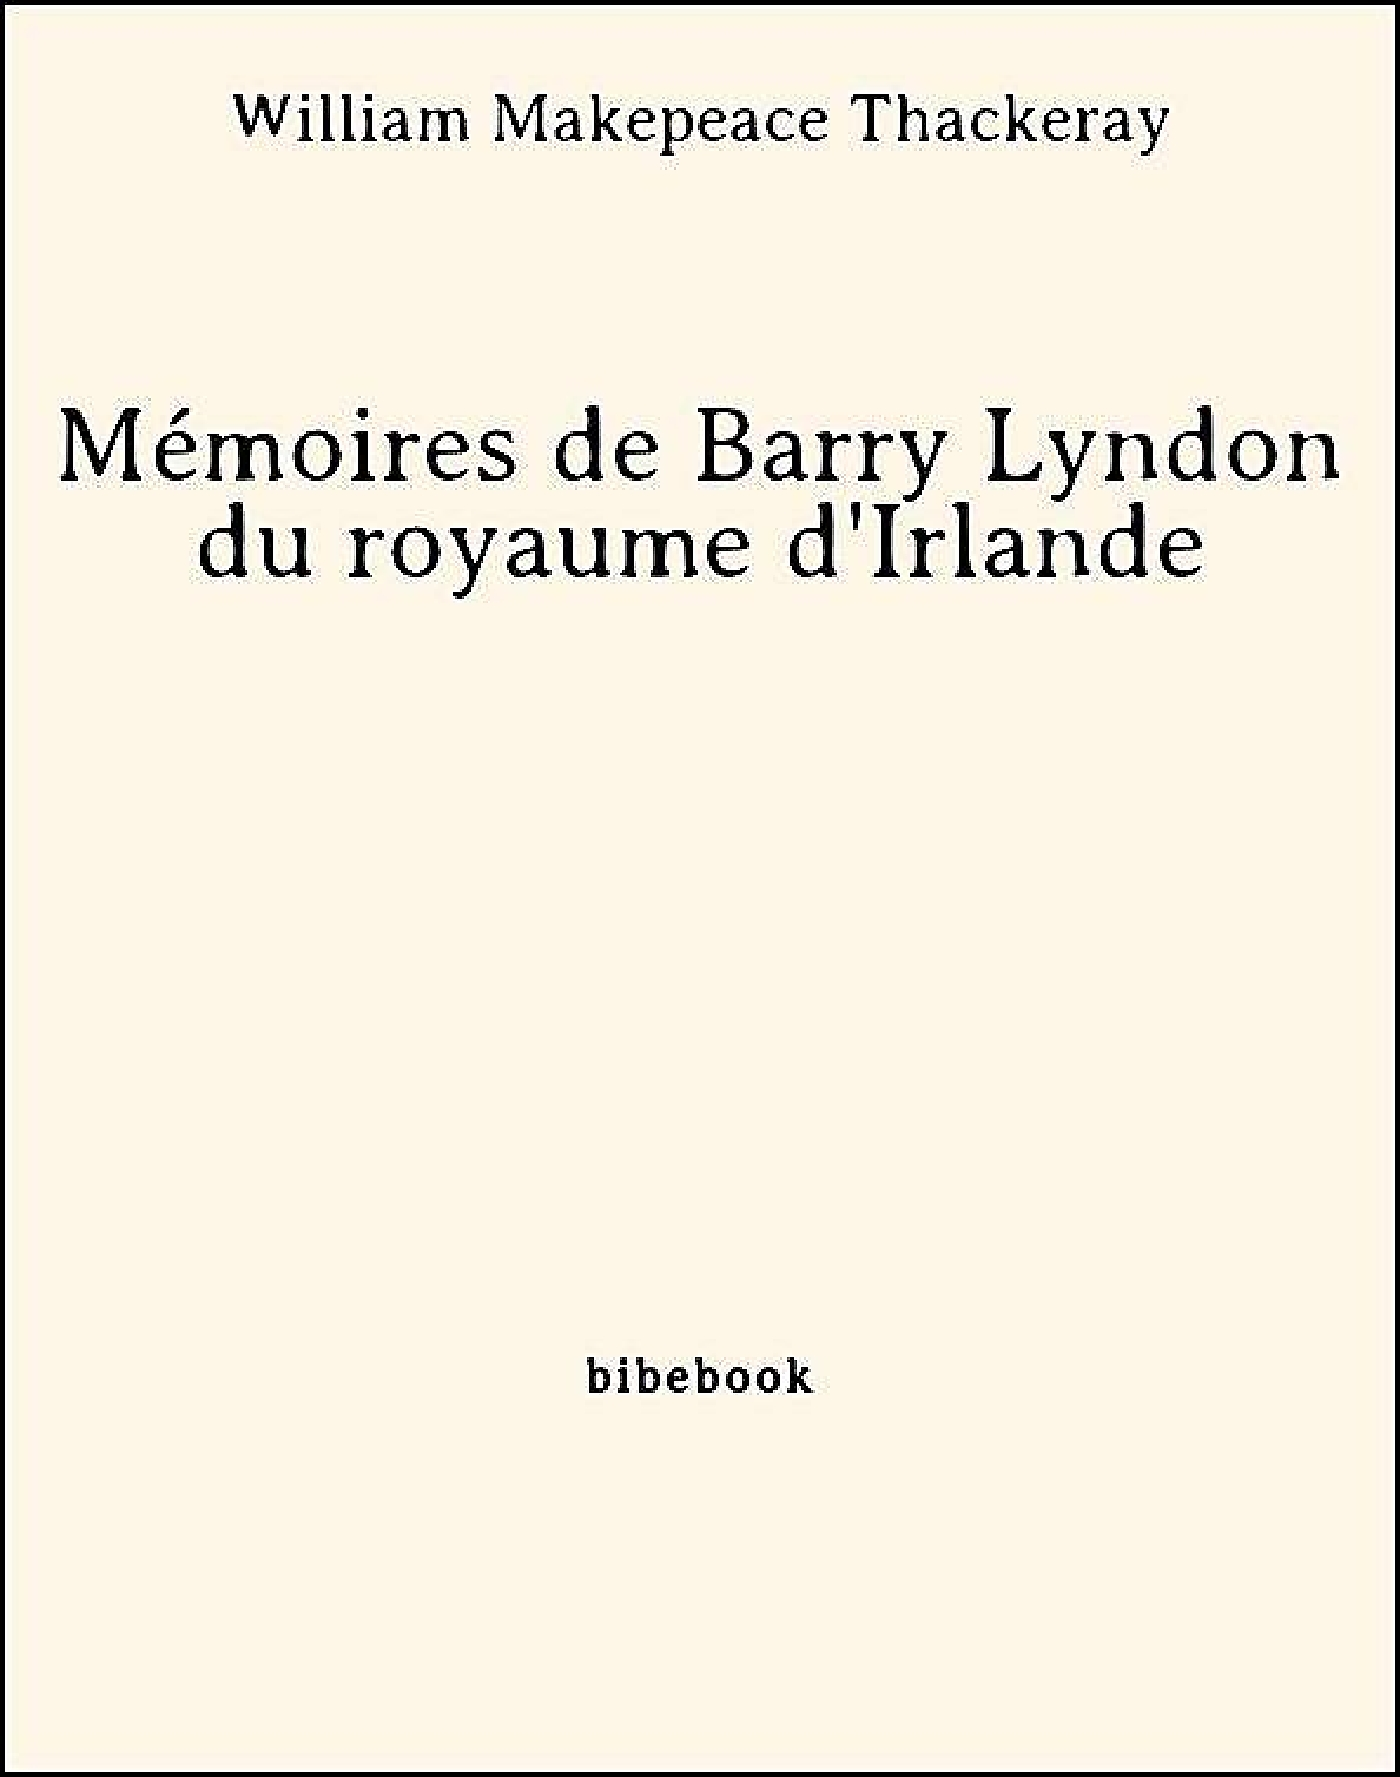 Mémoires de Barry Lyndon du royaume d'Irlande